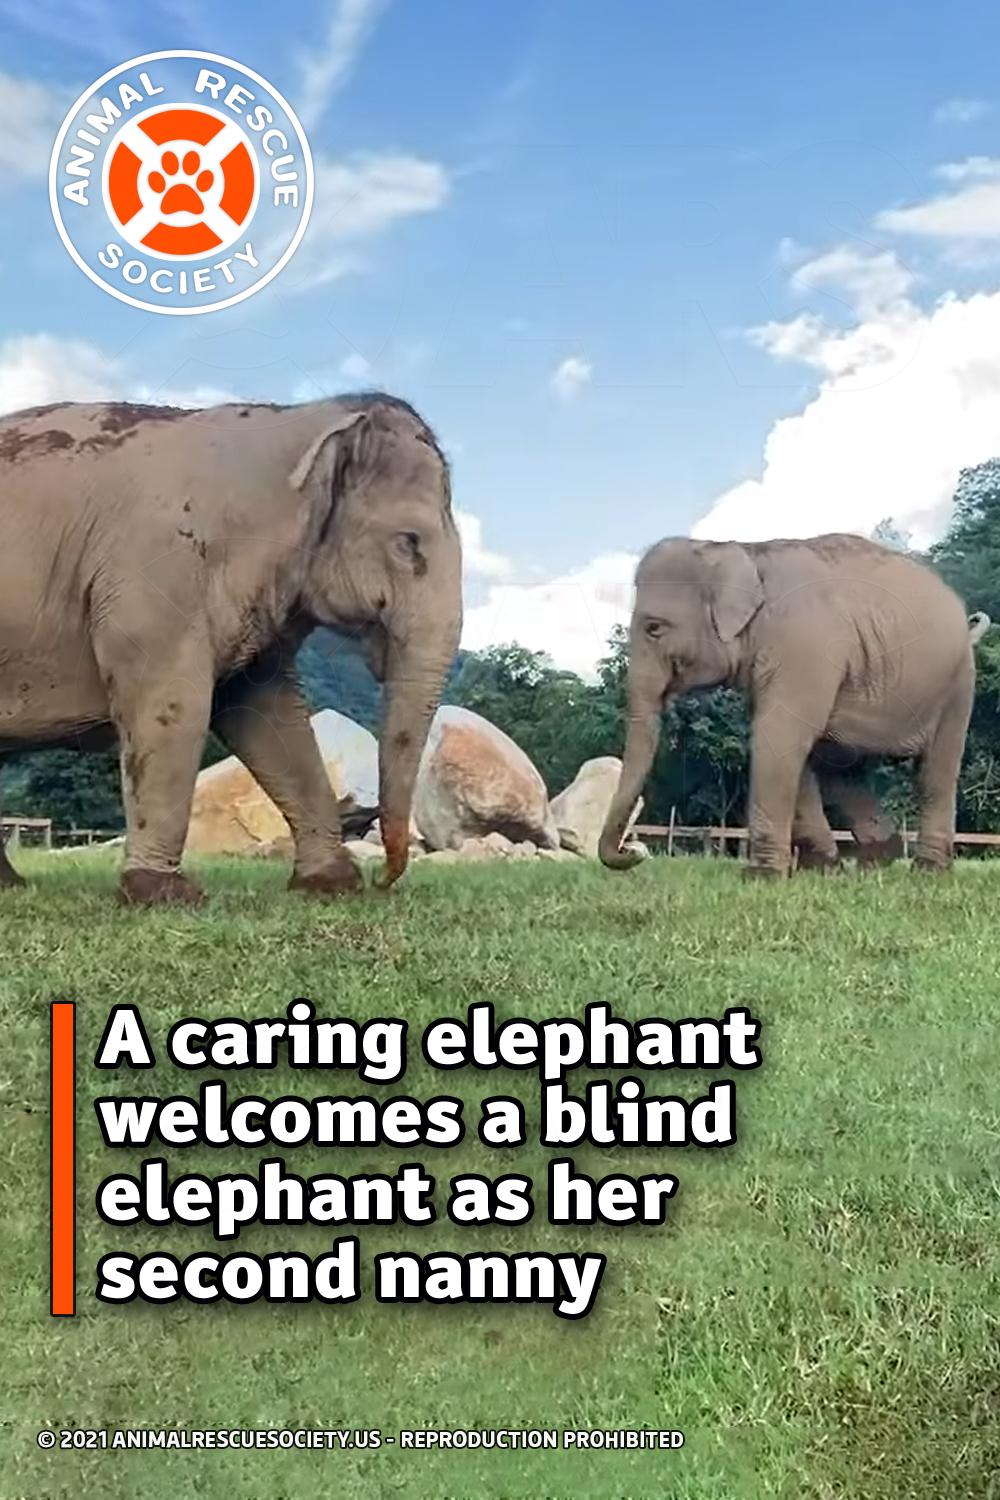 A caring elephant welcomes a blind elephant as her second nanny